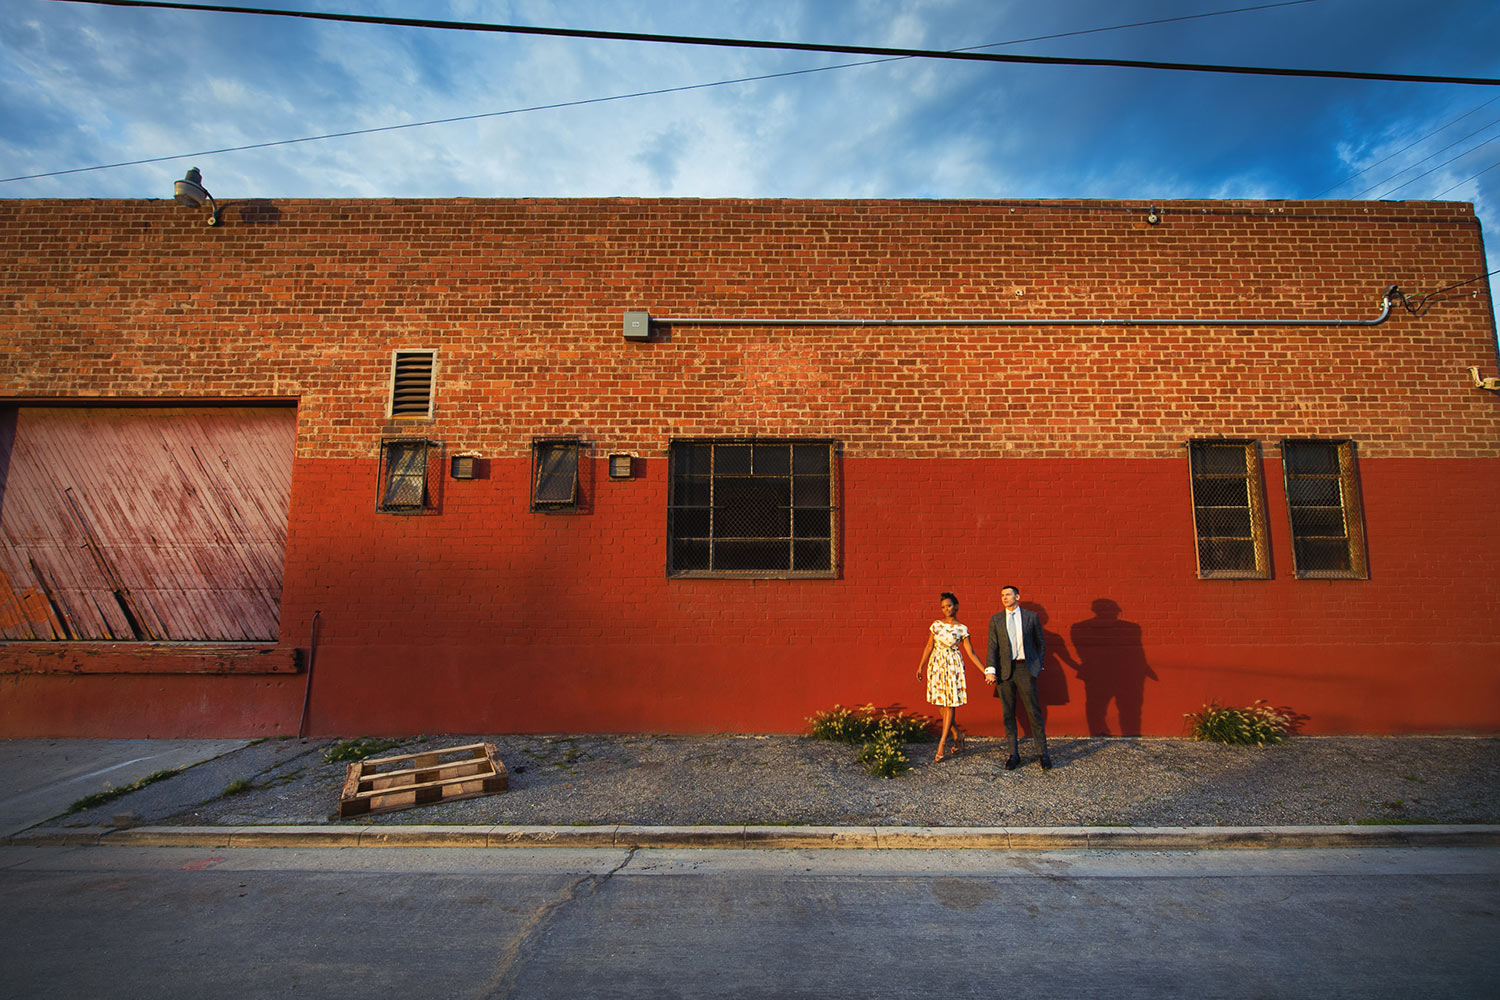 LA warehouse district engagement photo of African American couple against red wall